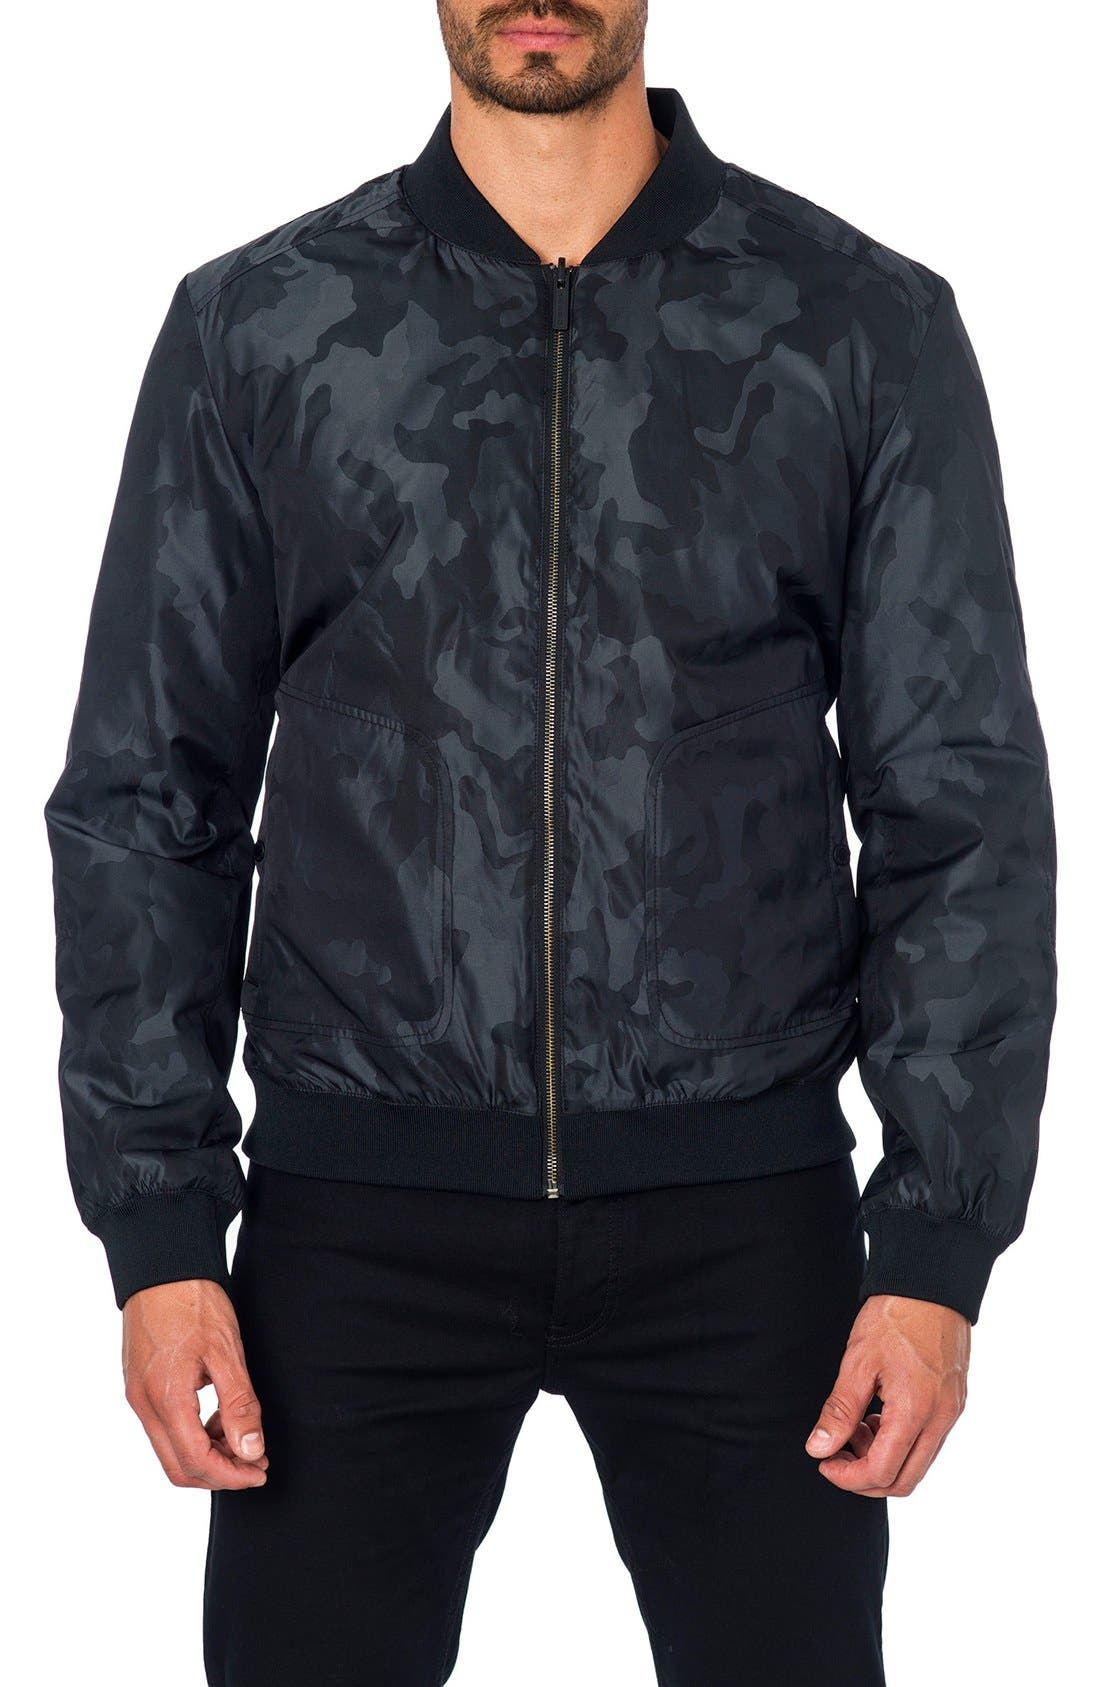 New York Reversible Bomber Jacket,                             Main thumbnail 1, color,                             Black Camo/ Black Quilted